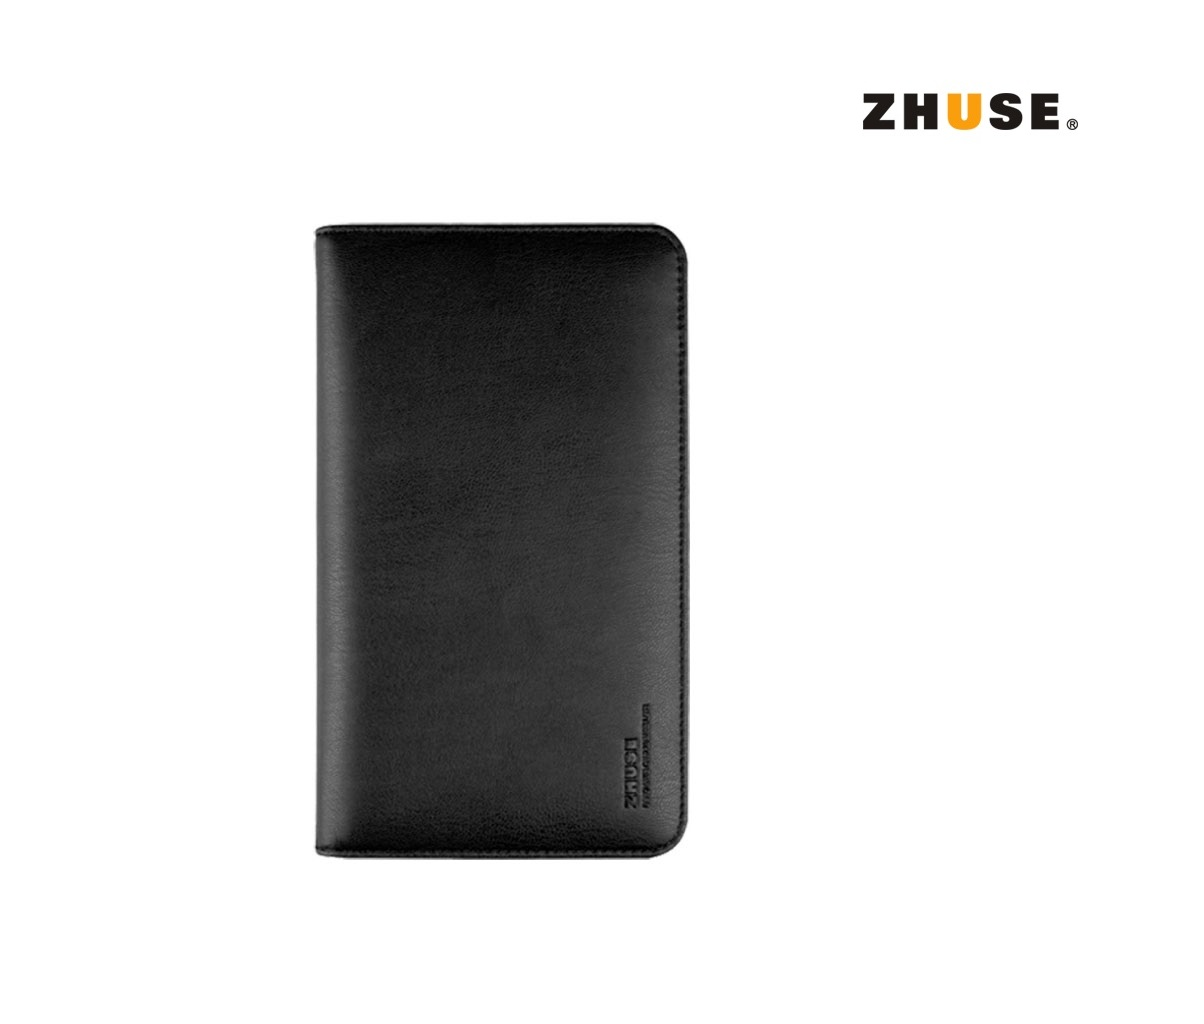 Zhuse X Series Leather Wallet - Black